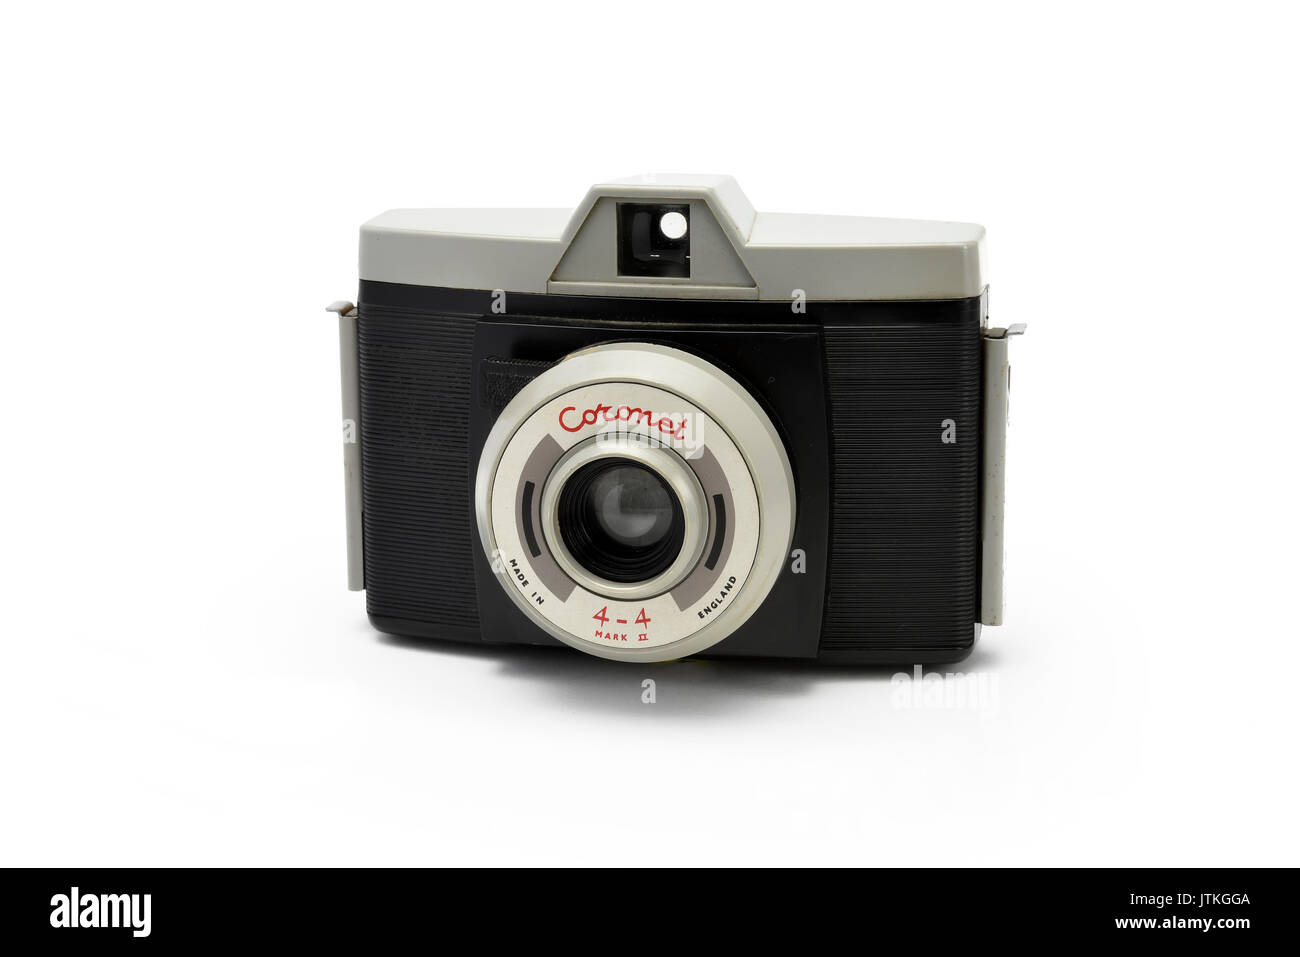 Vintage Coronet plastic film camera, A Diana Camera clone made in England - Stock Image